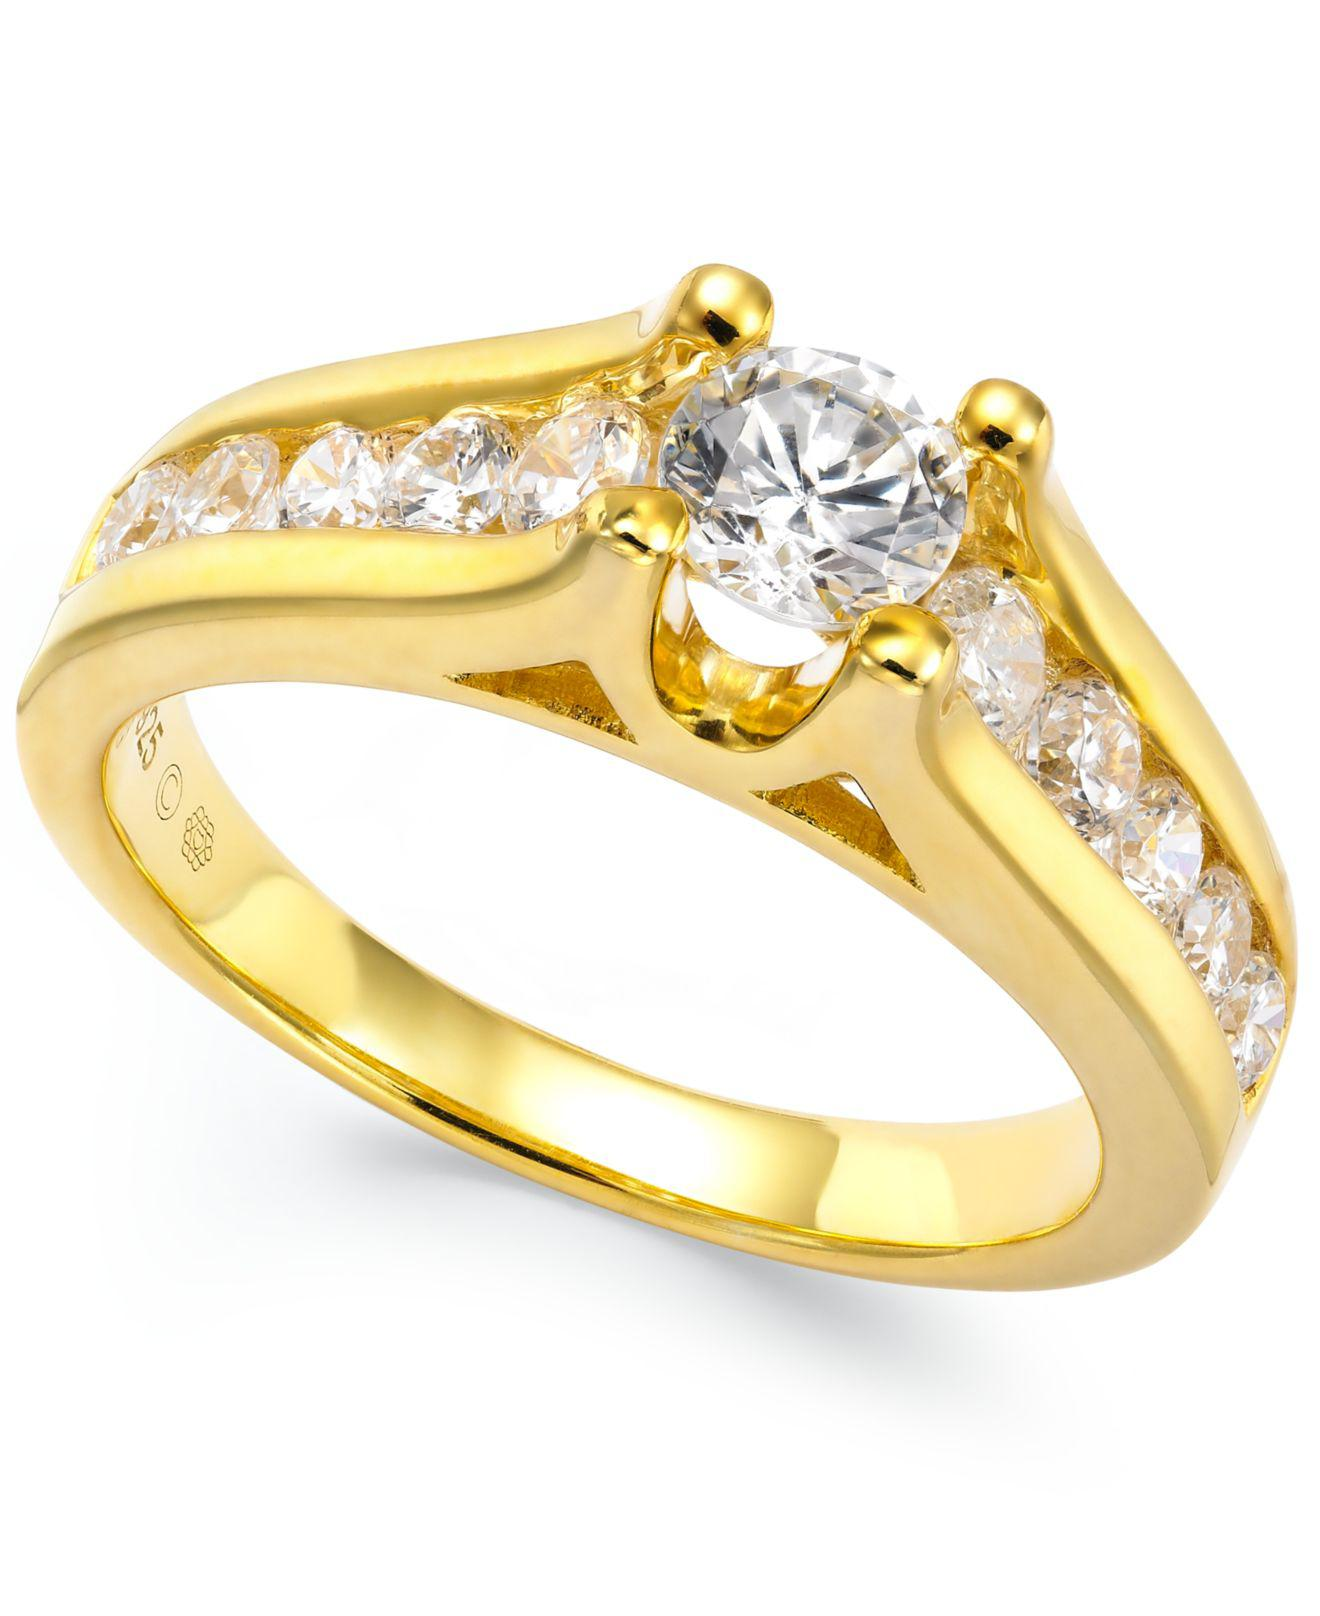 Macy's Certified Diamond Channel Engagement Ring In 14k